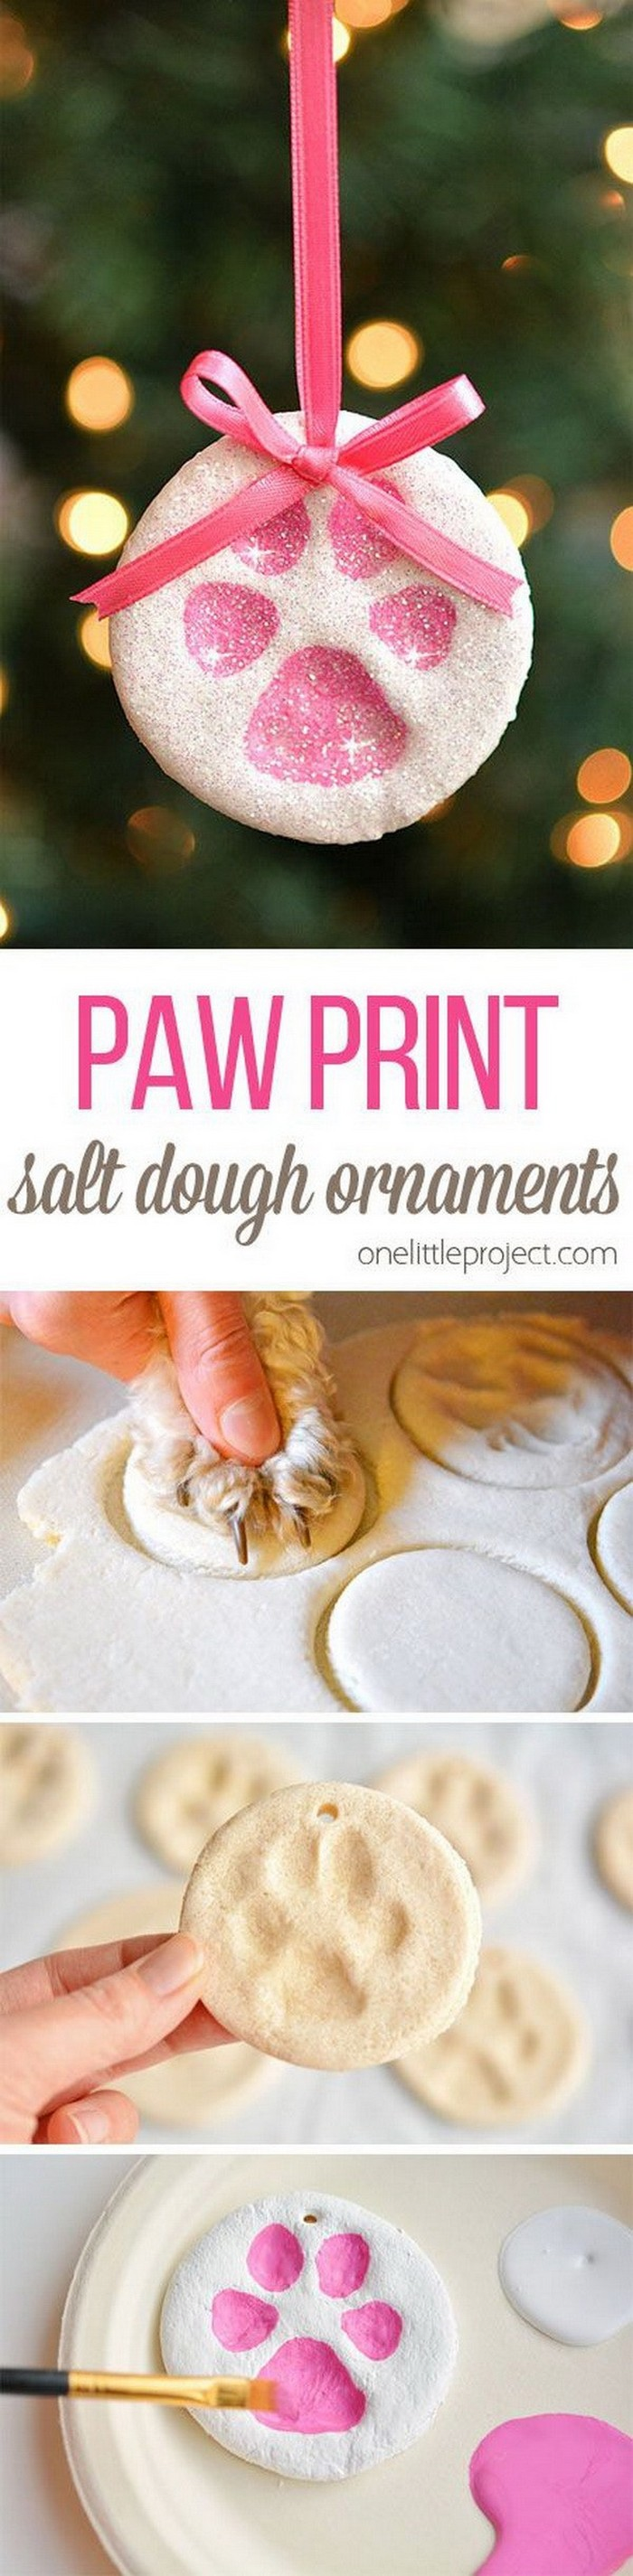 Print Salt Dough Ornaments - DIY Christmas crafts